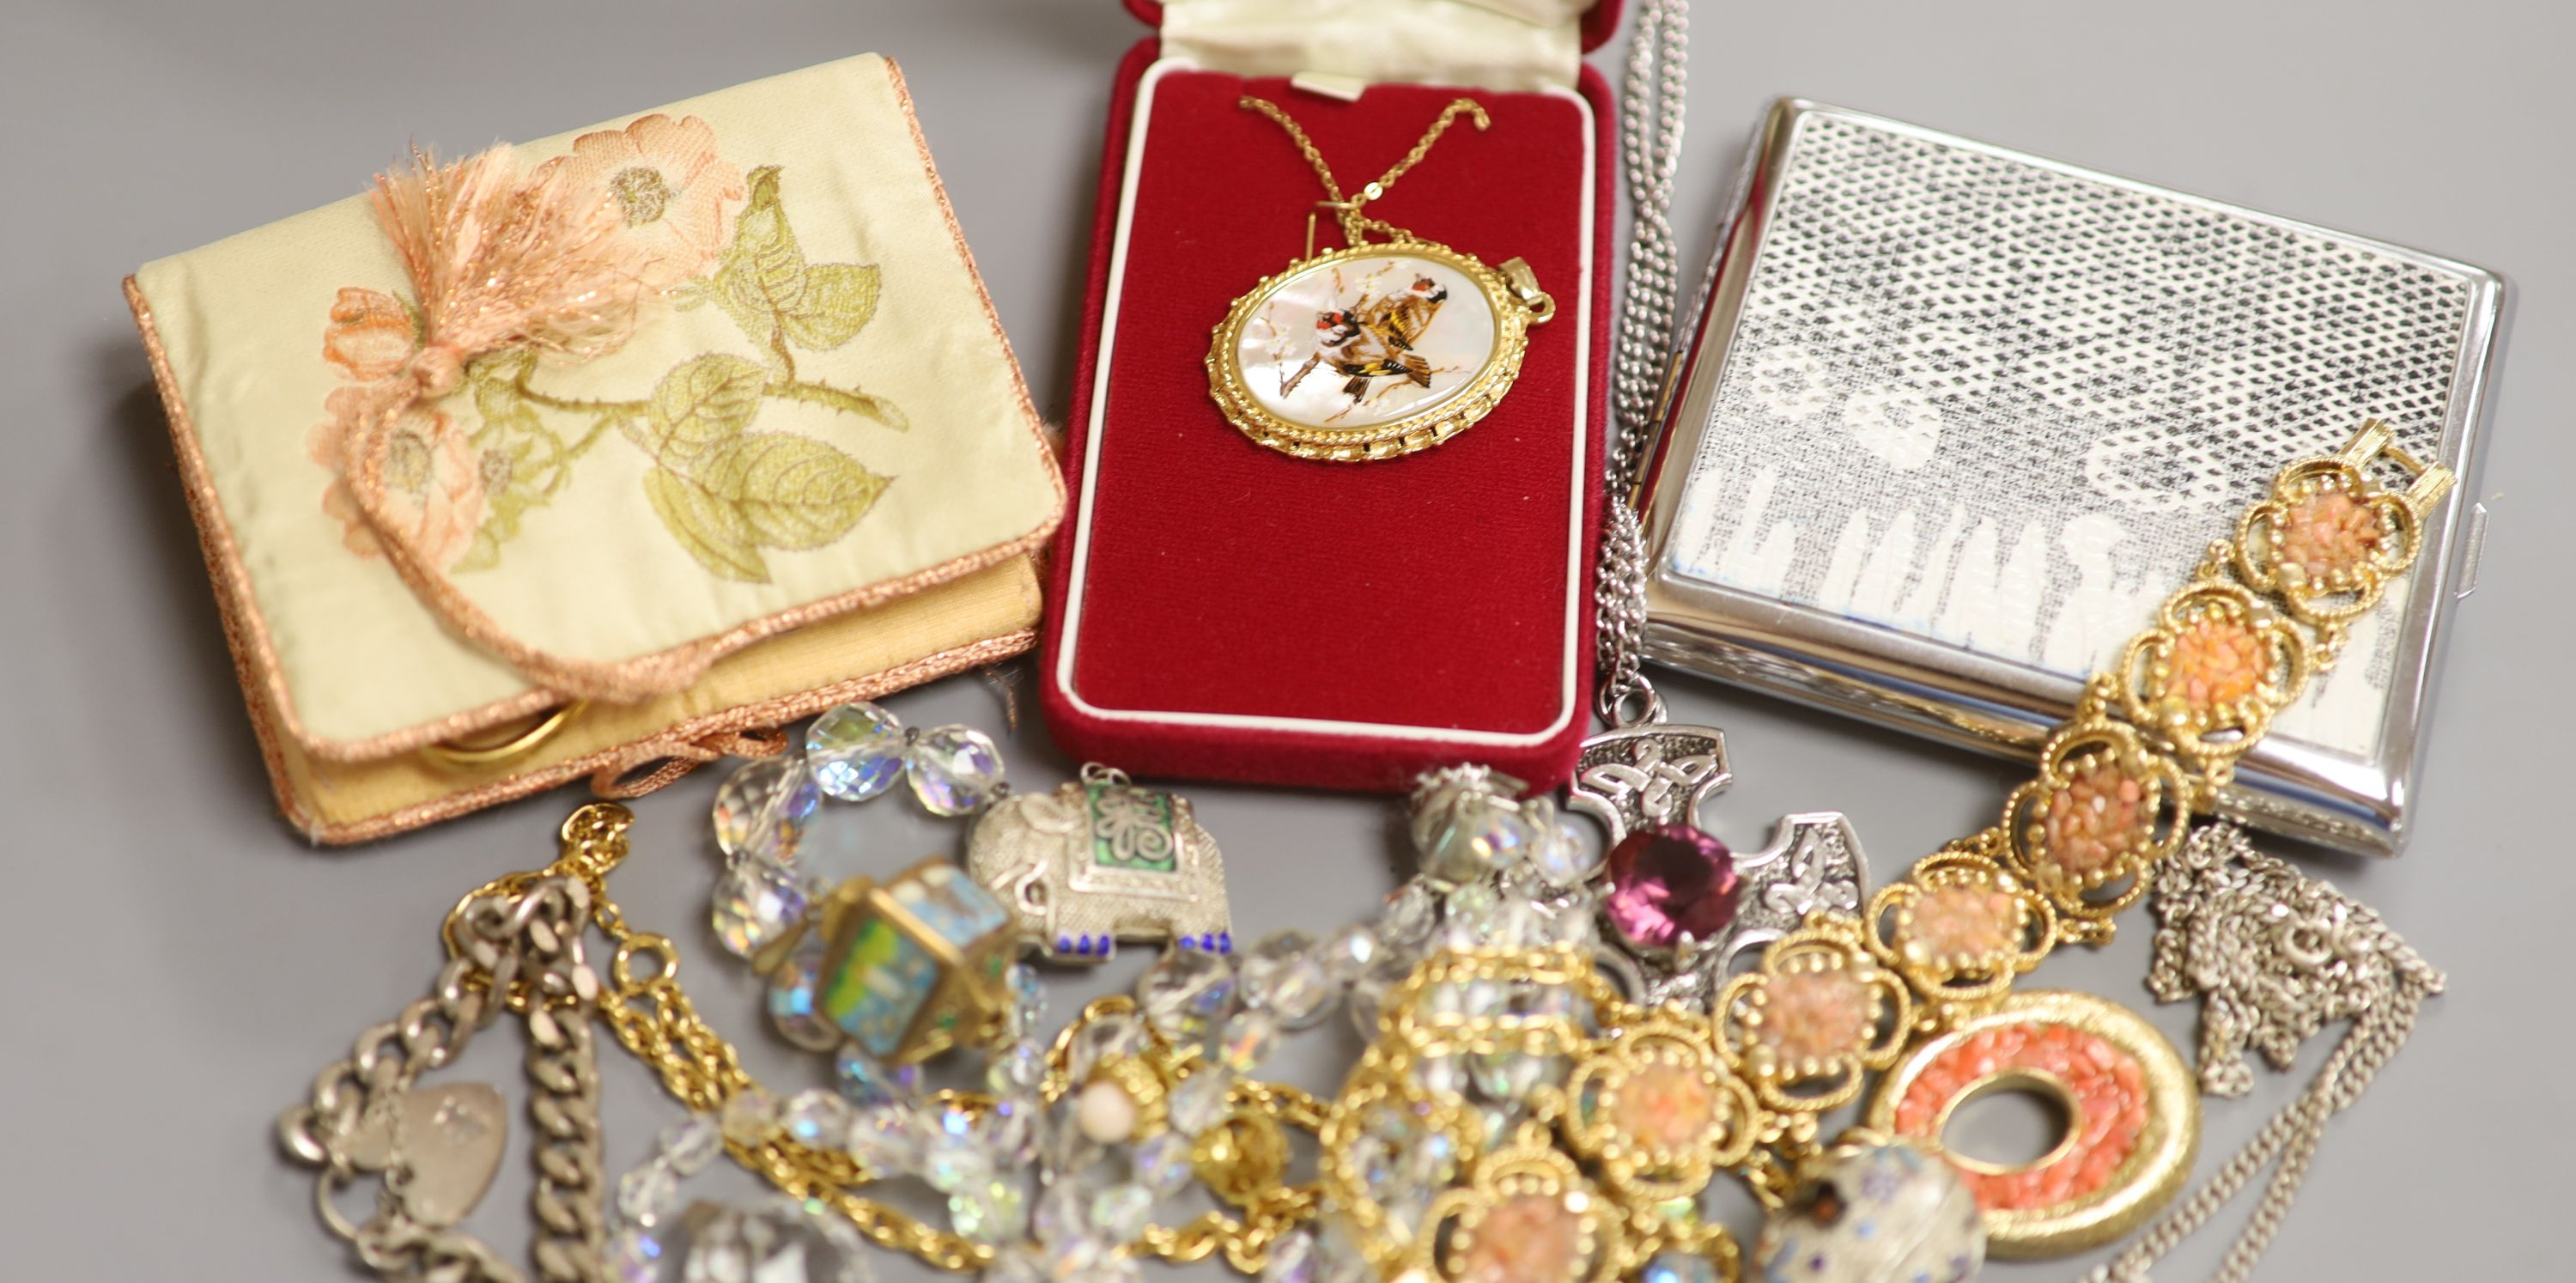 Mixed jewellery including silver bracelet, costume jewellery and a cigarette case.